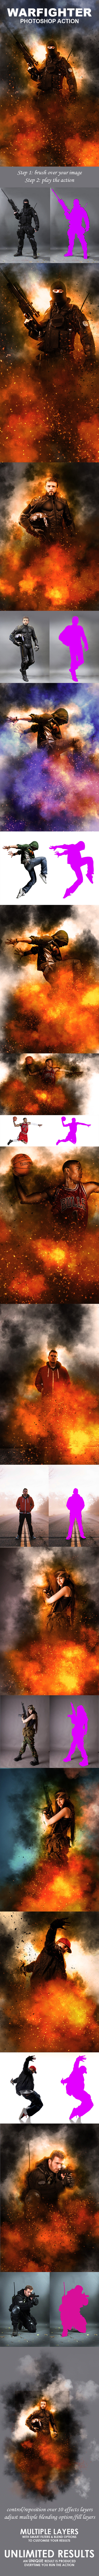 Warfighter Photoshop Action - Photo Effects Actions